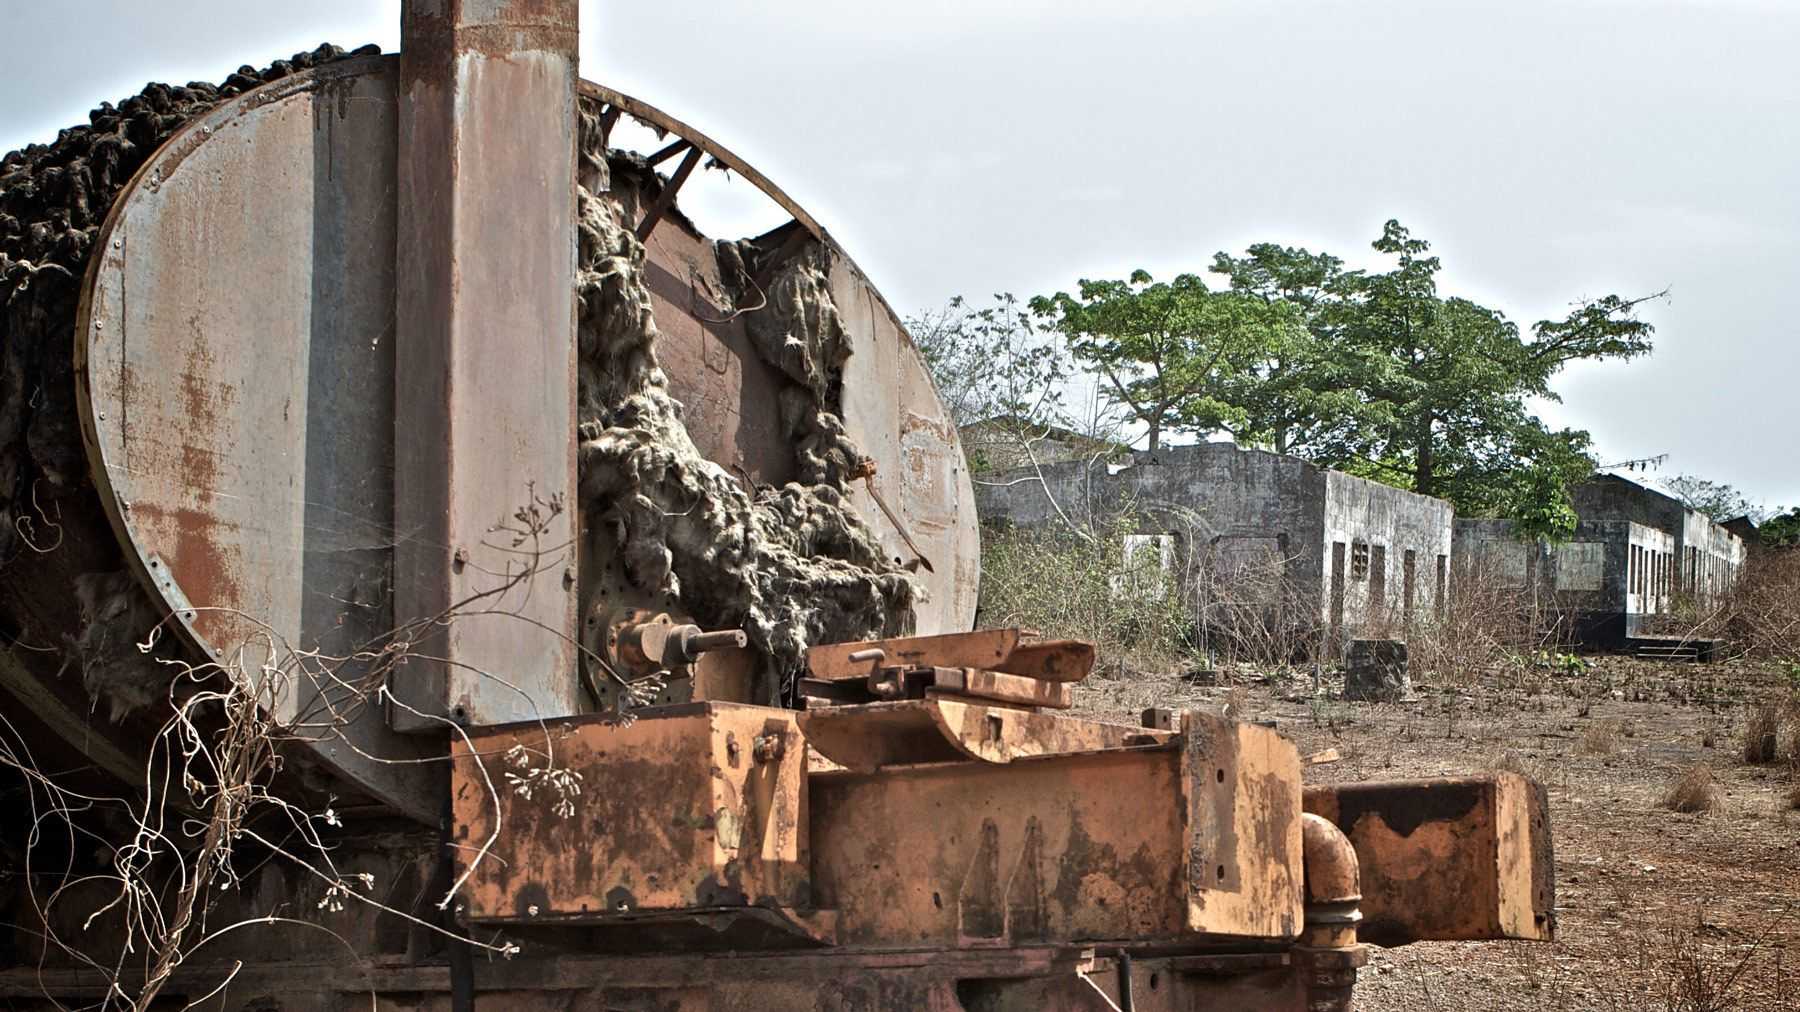 1burned_tanker_destroyed_houses_sierra_leone.jpg